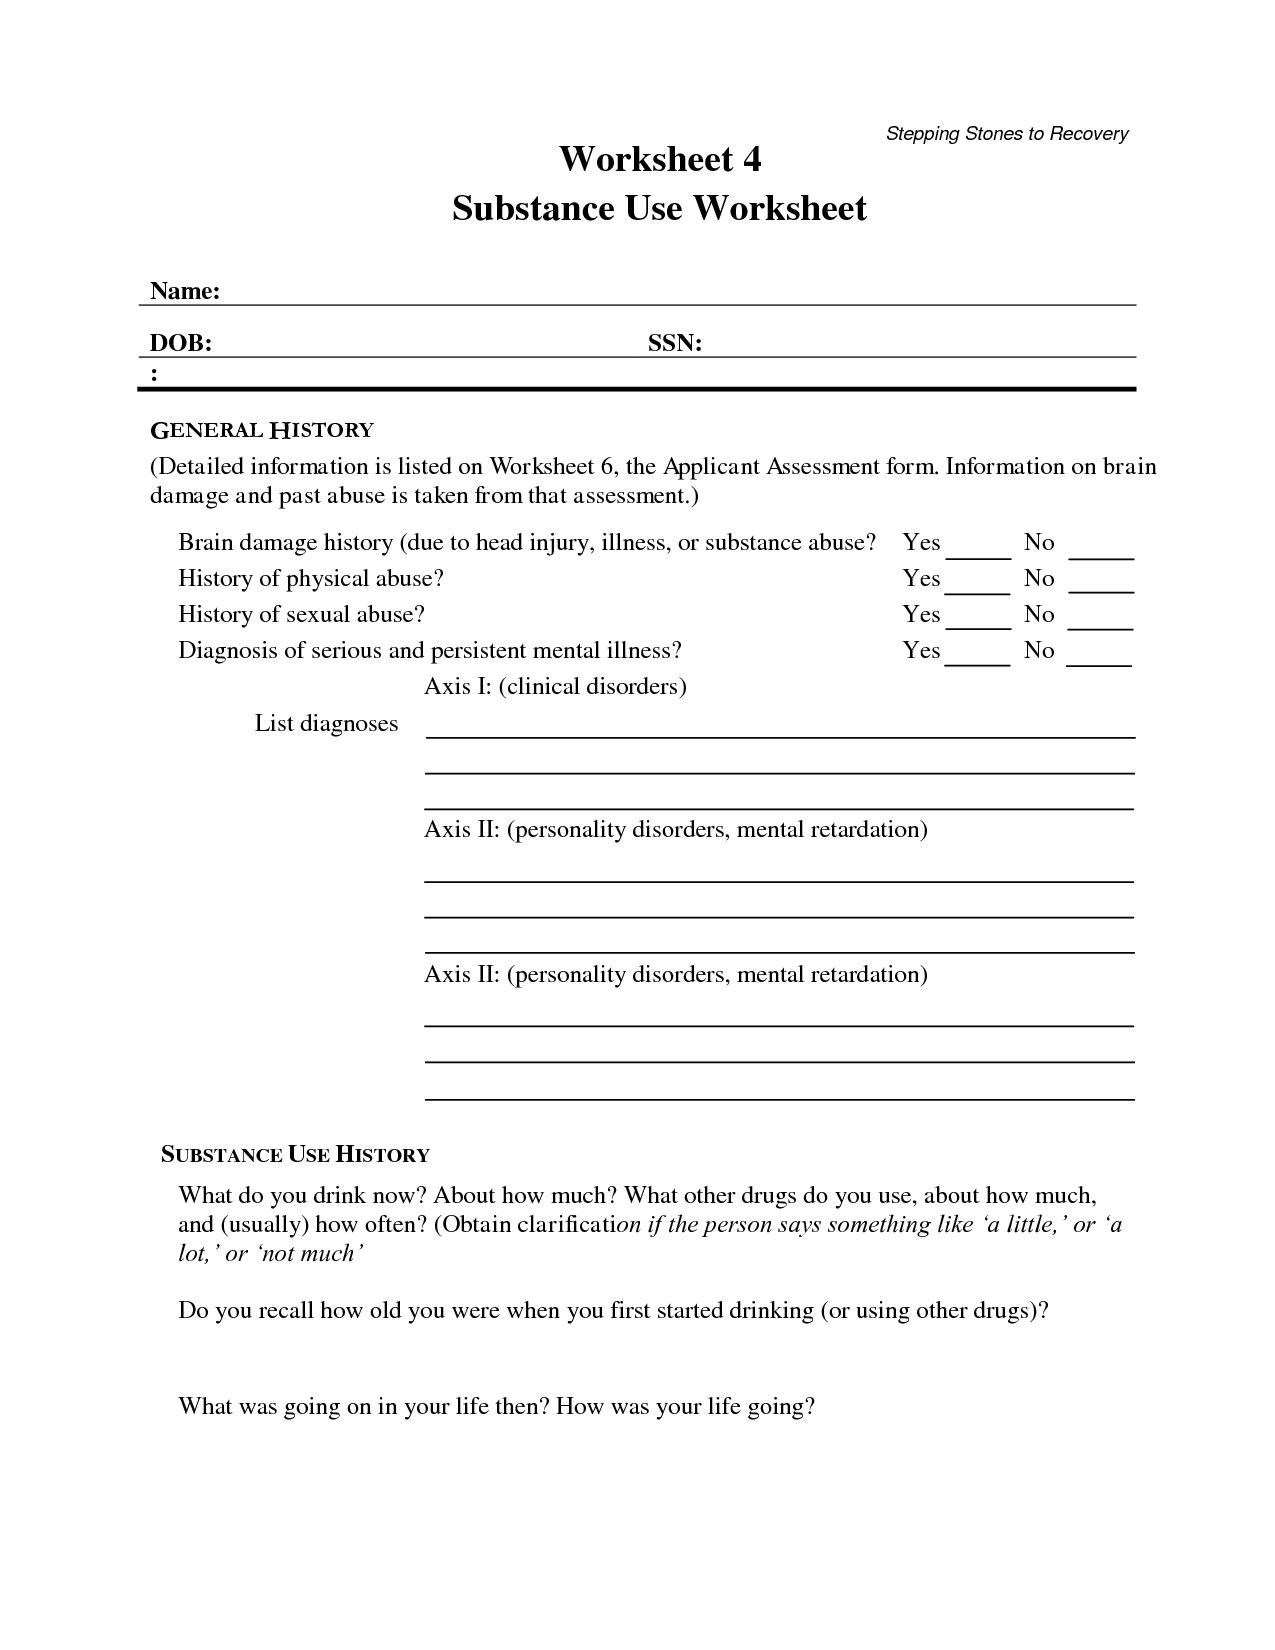 15 Best Images Of Drug Use Worksheet